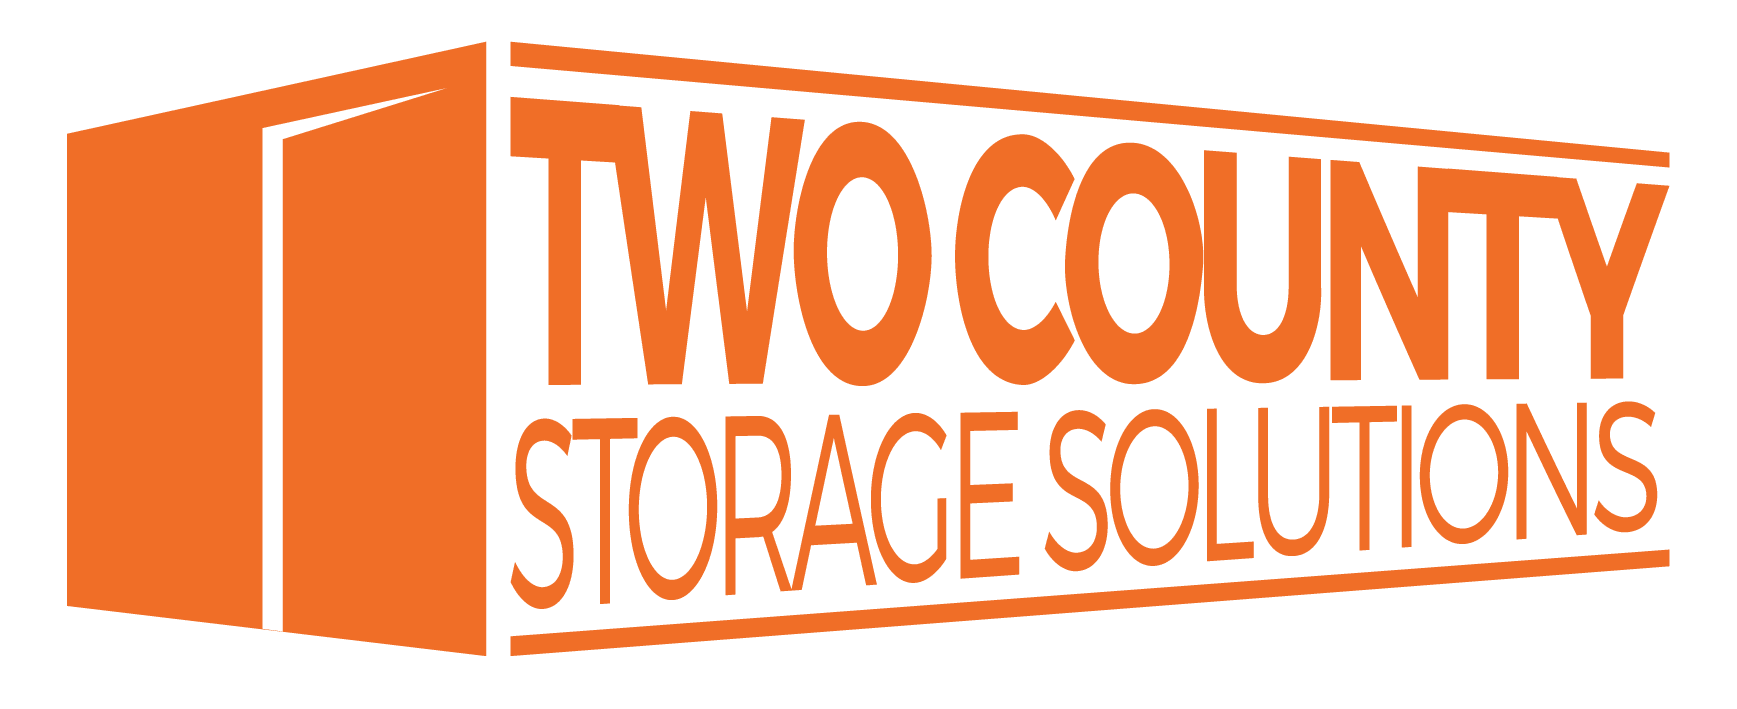 Two County Storage Solutions